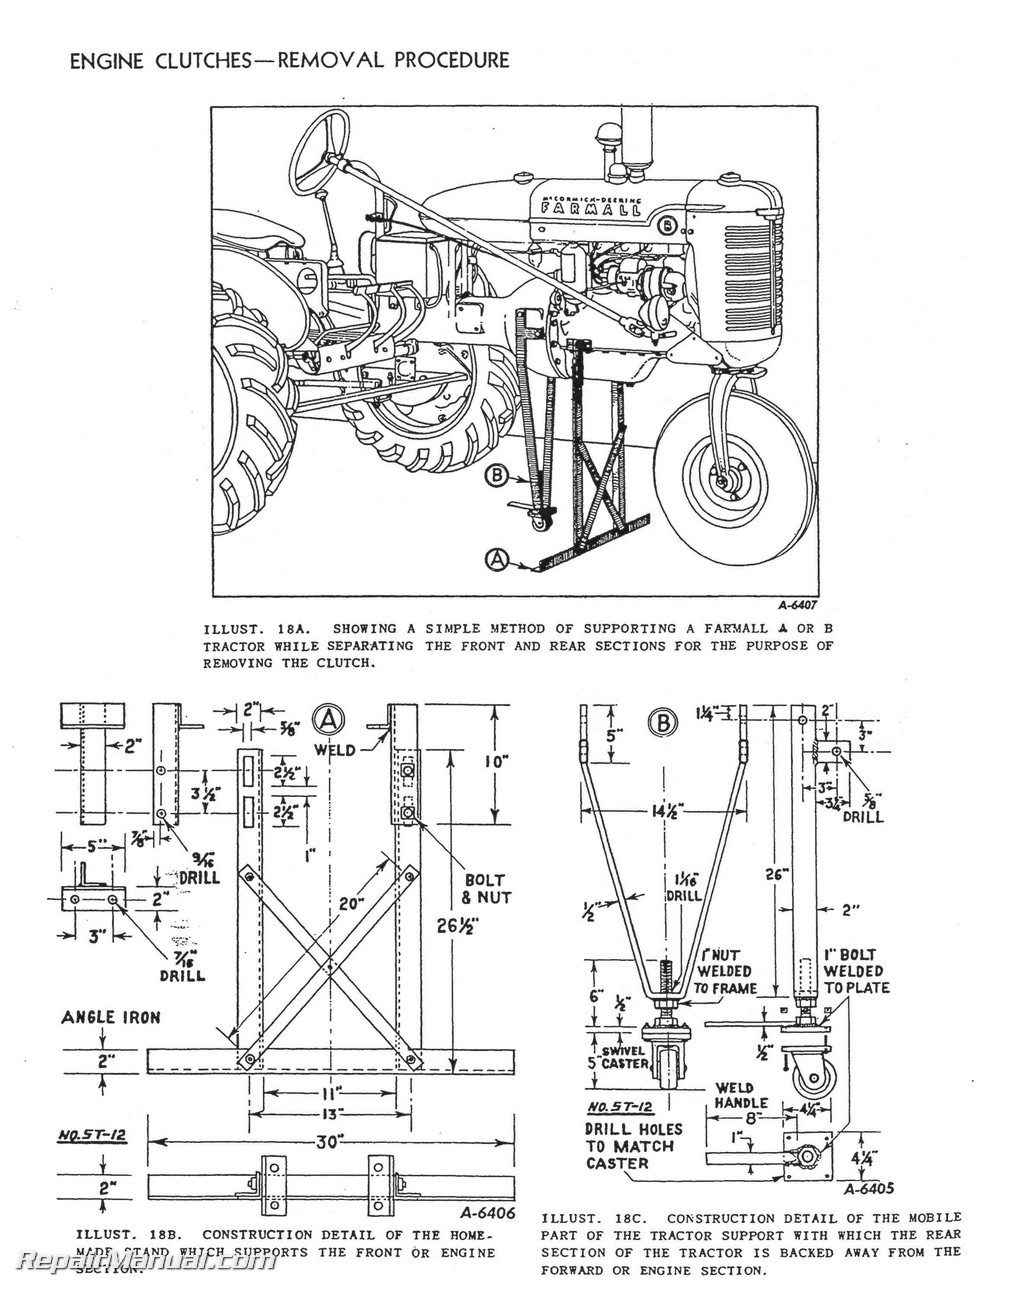 international harvester farmall tractor engine clutch transmission rh repairmanual com Kubota Tractor Parts Diagrams Case Tractor Parts Diagrams